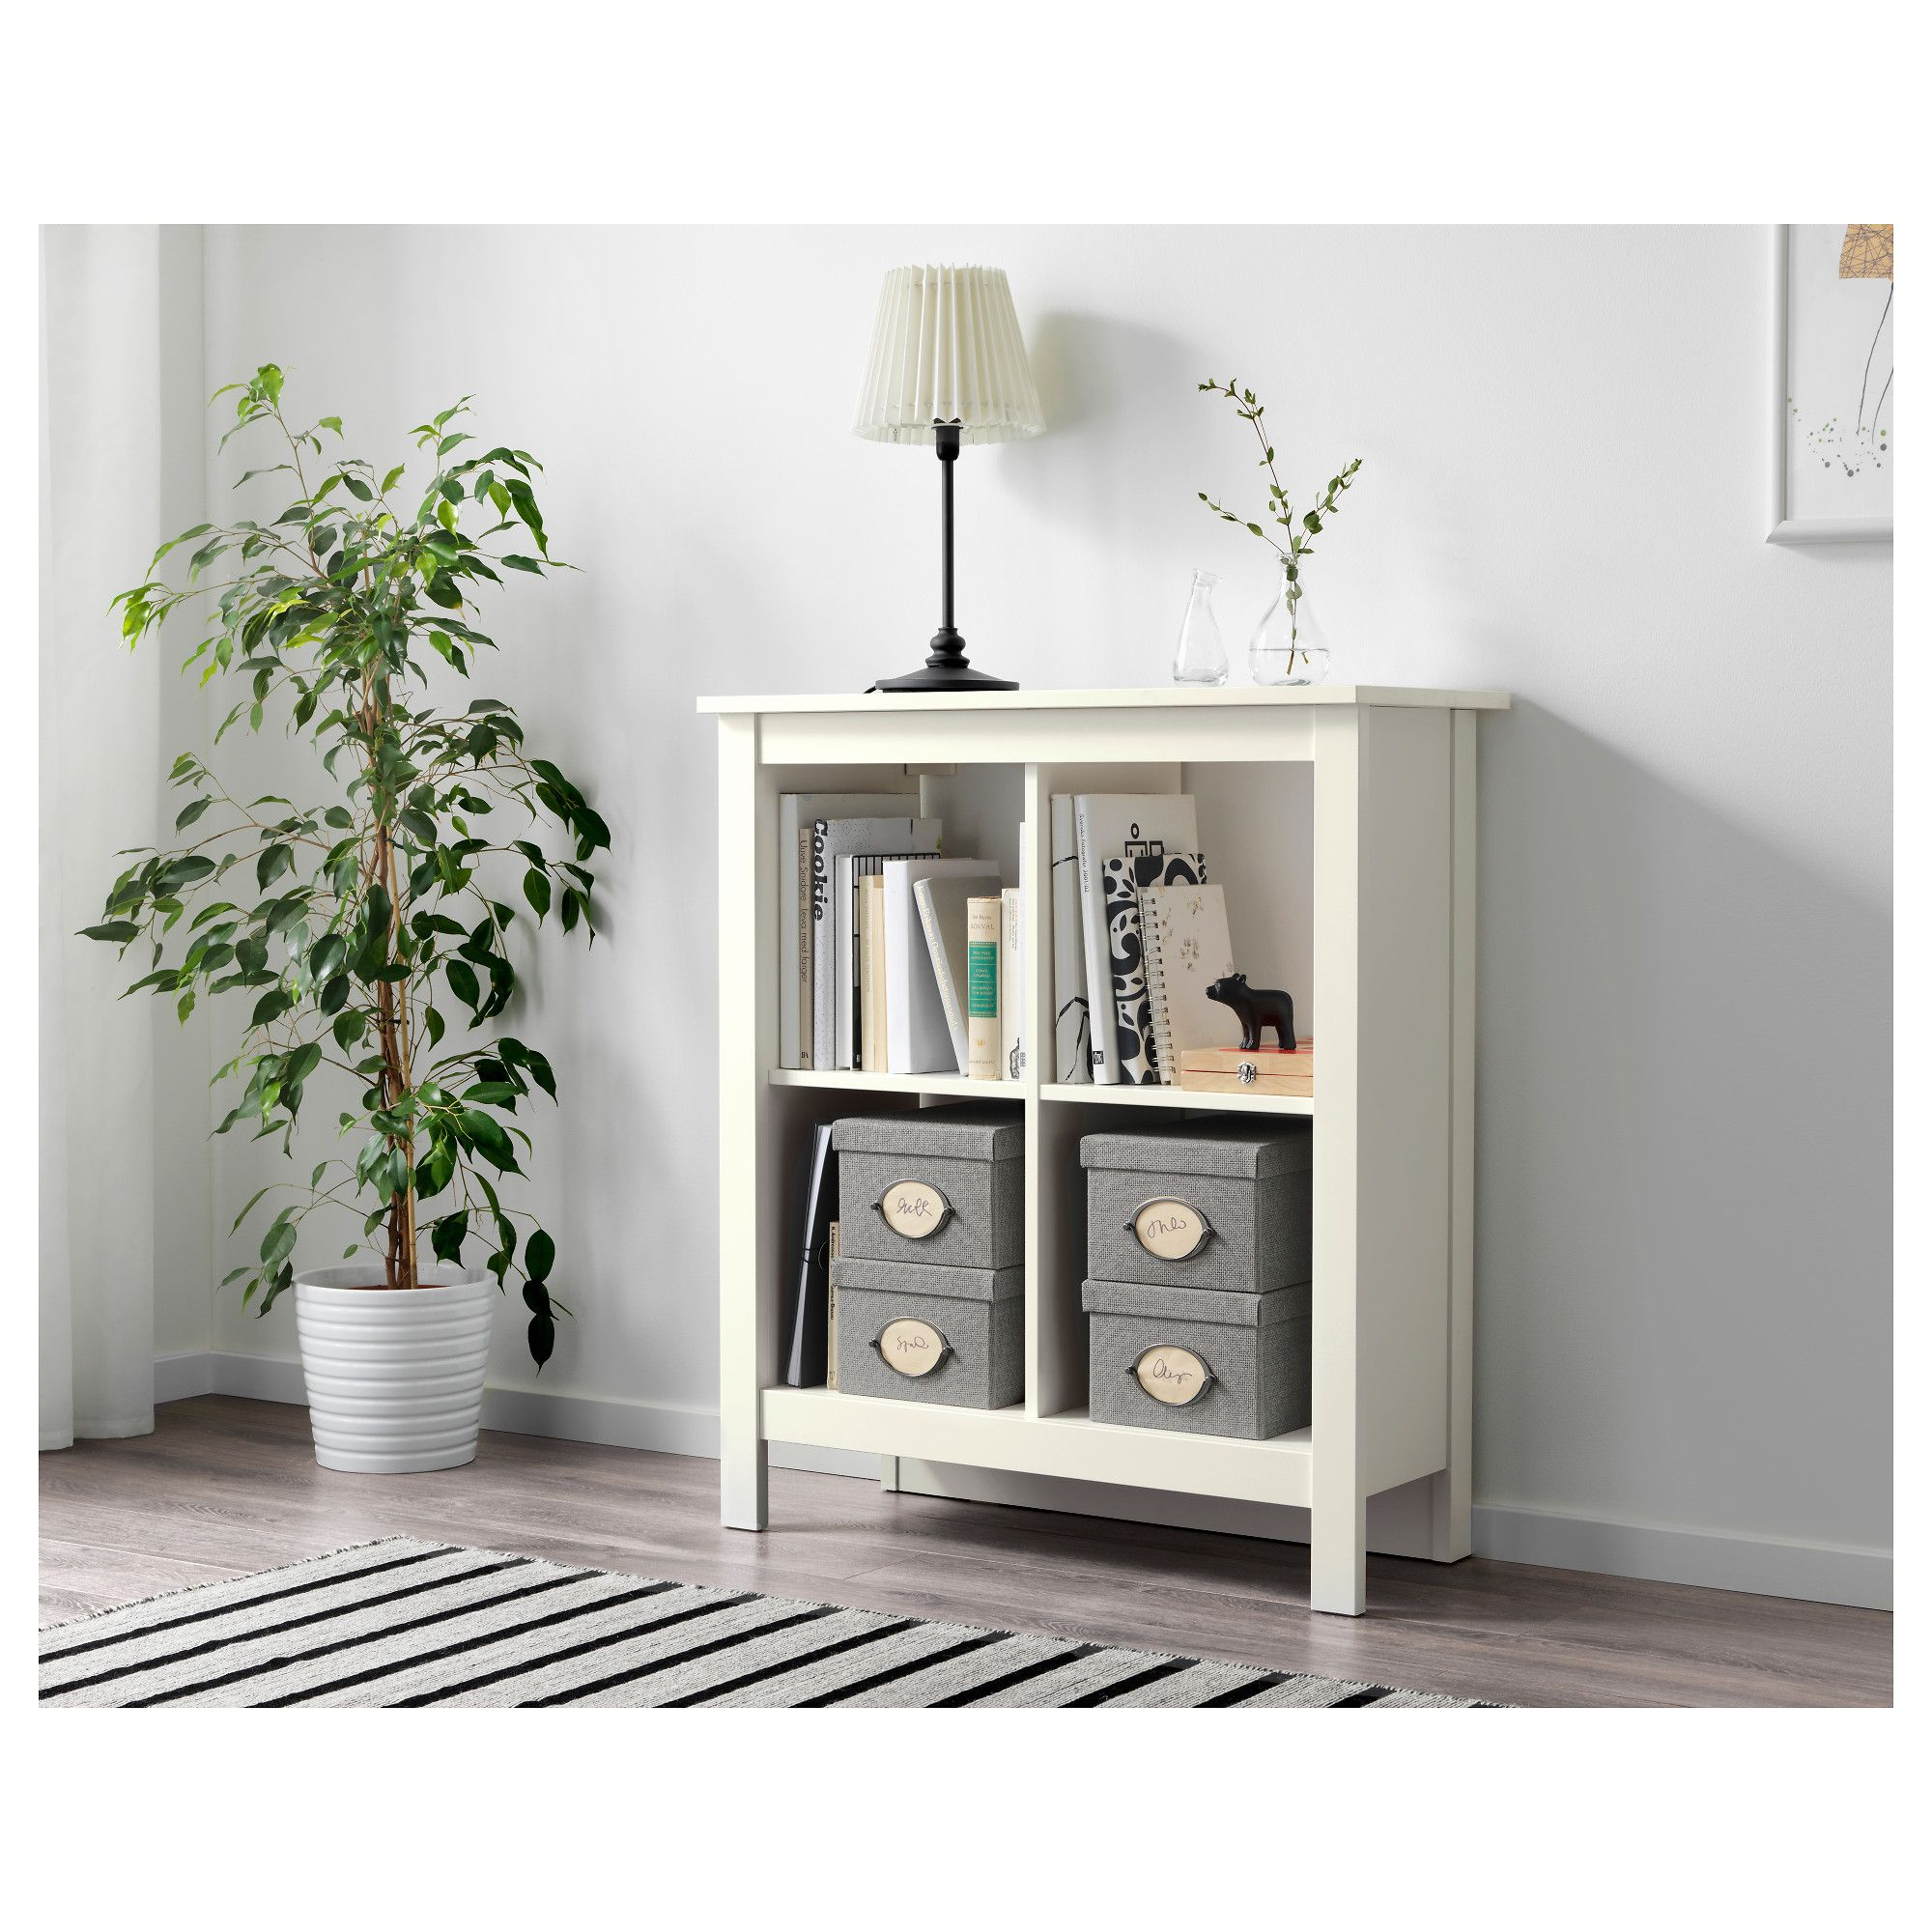 and perhaps the lower version under the glass shelves tv ikea tomn s shelving unit easy to. Black Bedroom Furniture Sets. Home Design Ideas